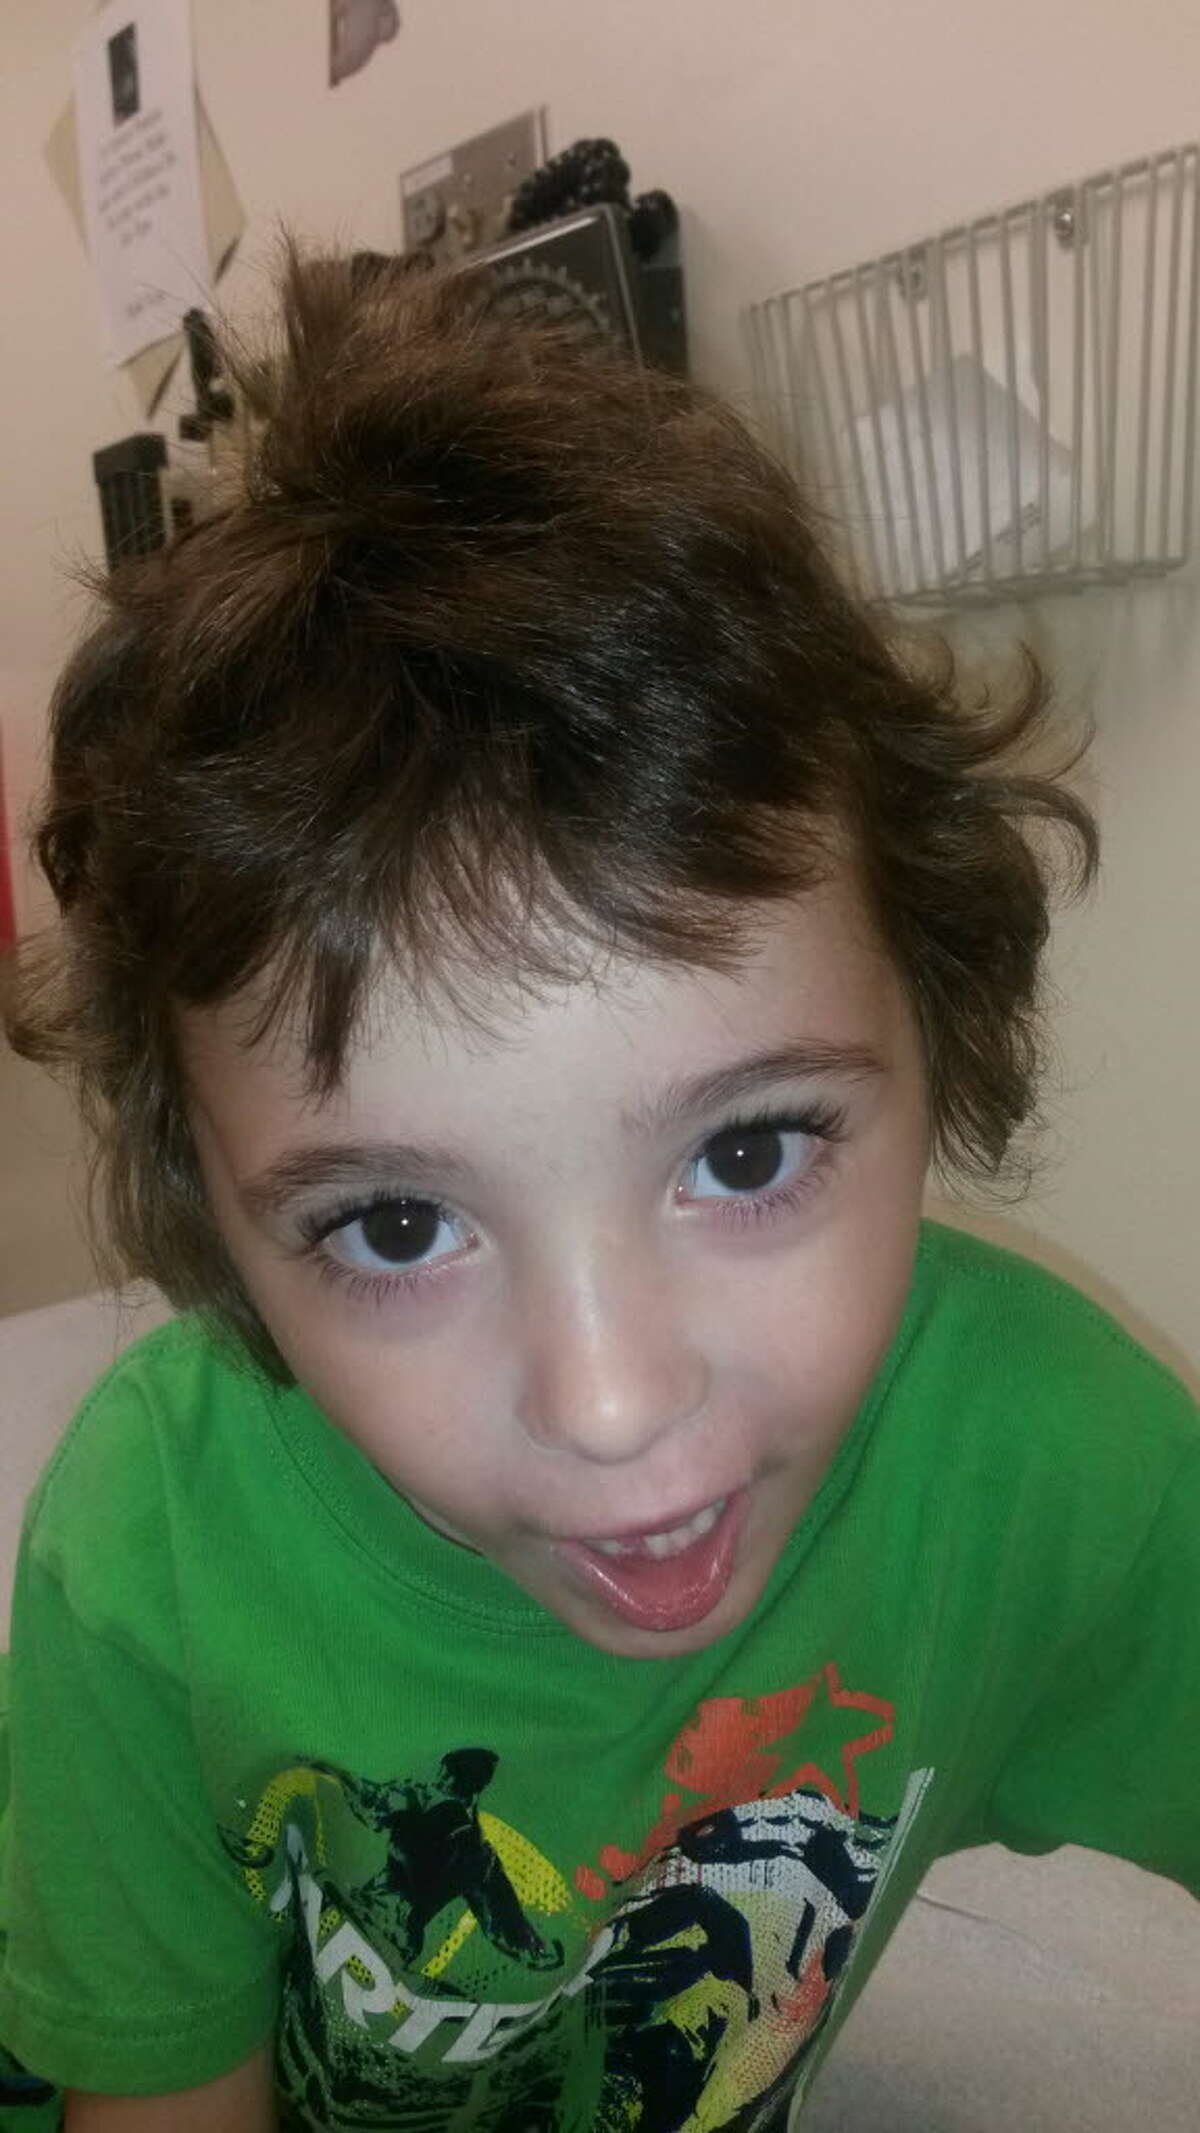 Photo of 5-year-old Kenneth White, who was being cared for in a Knox trailer with his two siblings by his aunt and 19-year-old cousin, who is accused of beating him and choking him to death just before Christmas 2014. (Photo provided by Brenda VanAlstyne)